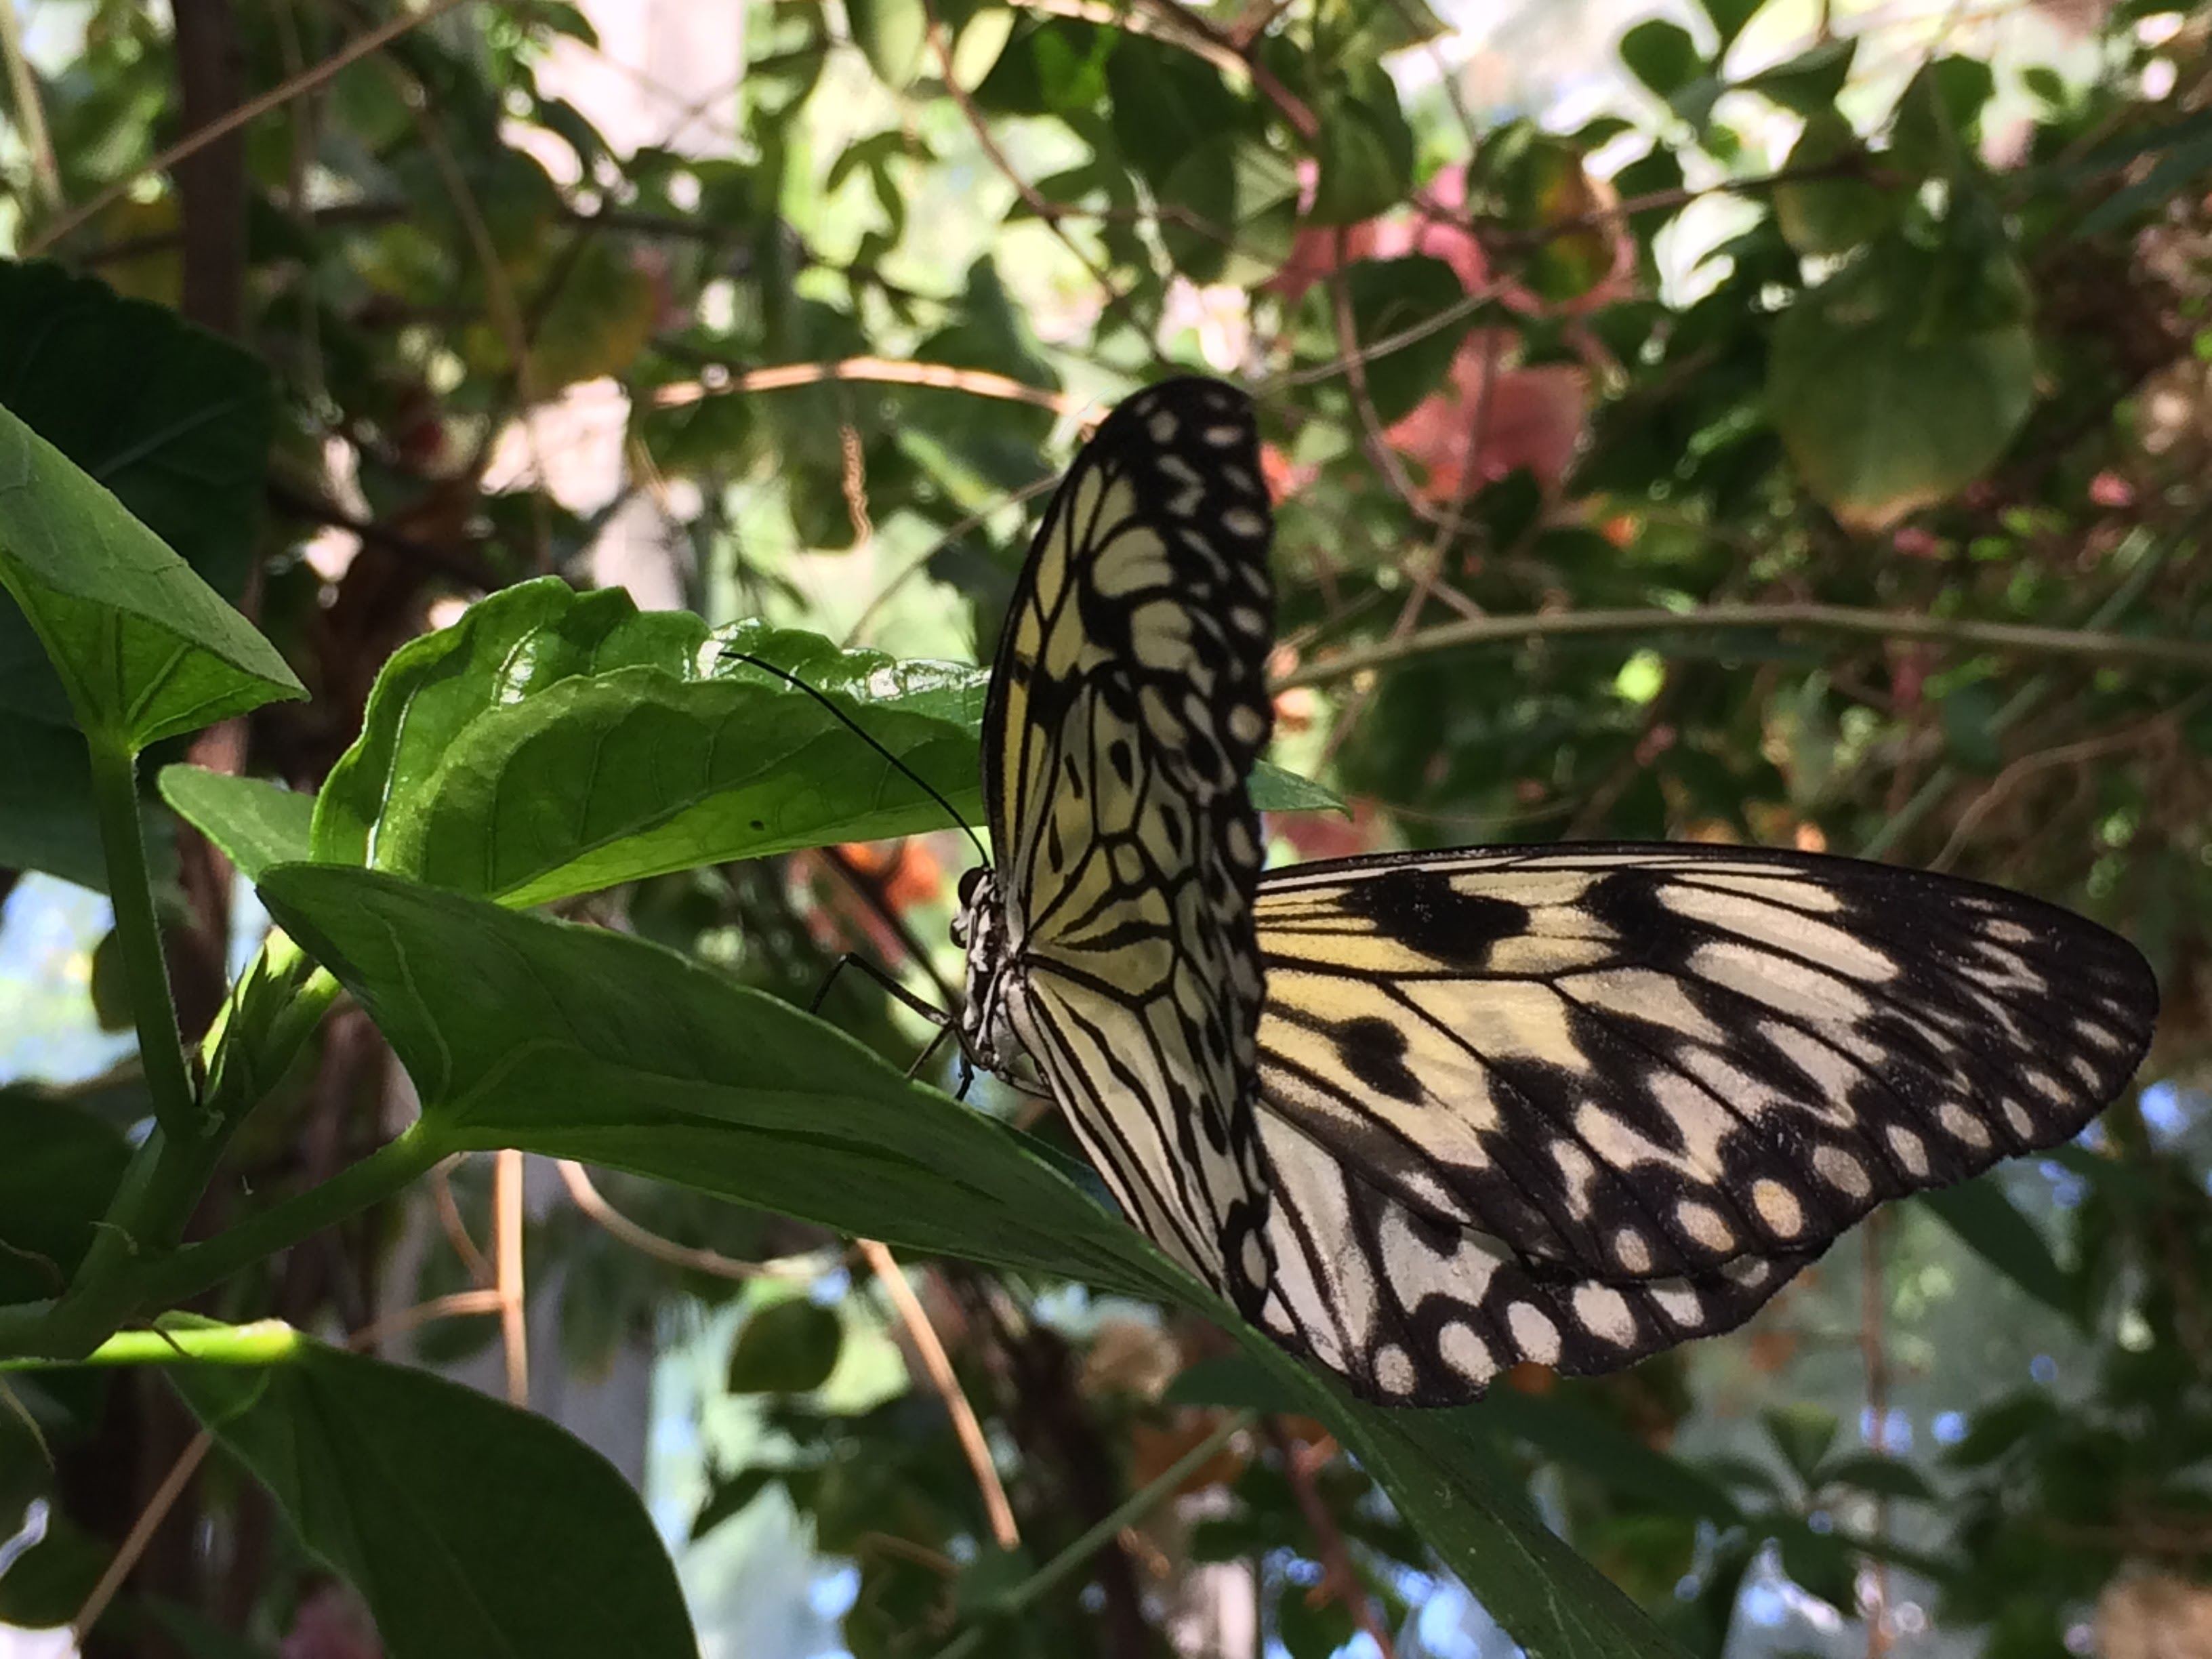 Live Butterfly in the greenhouse